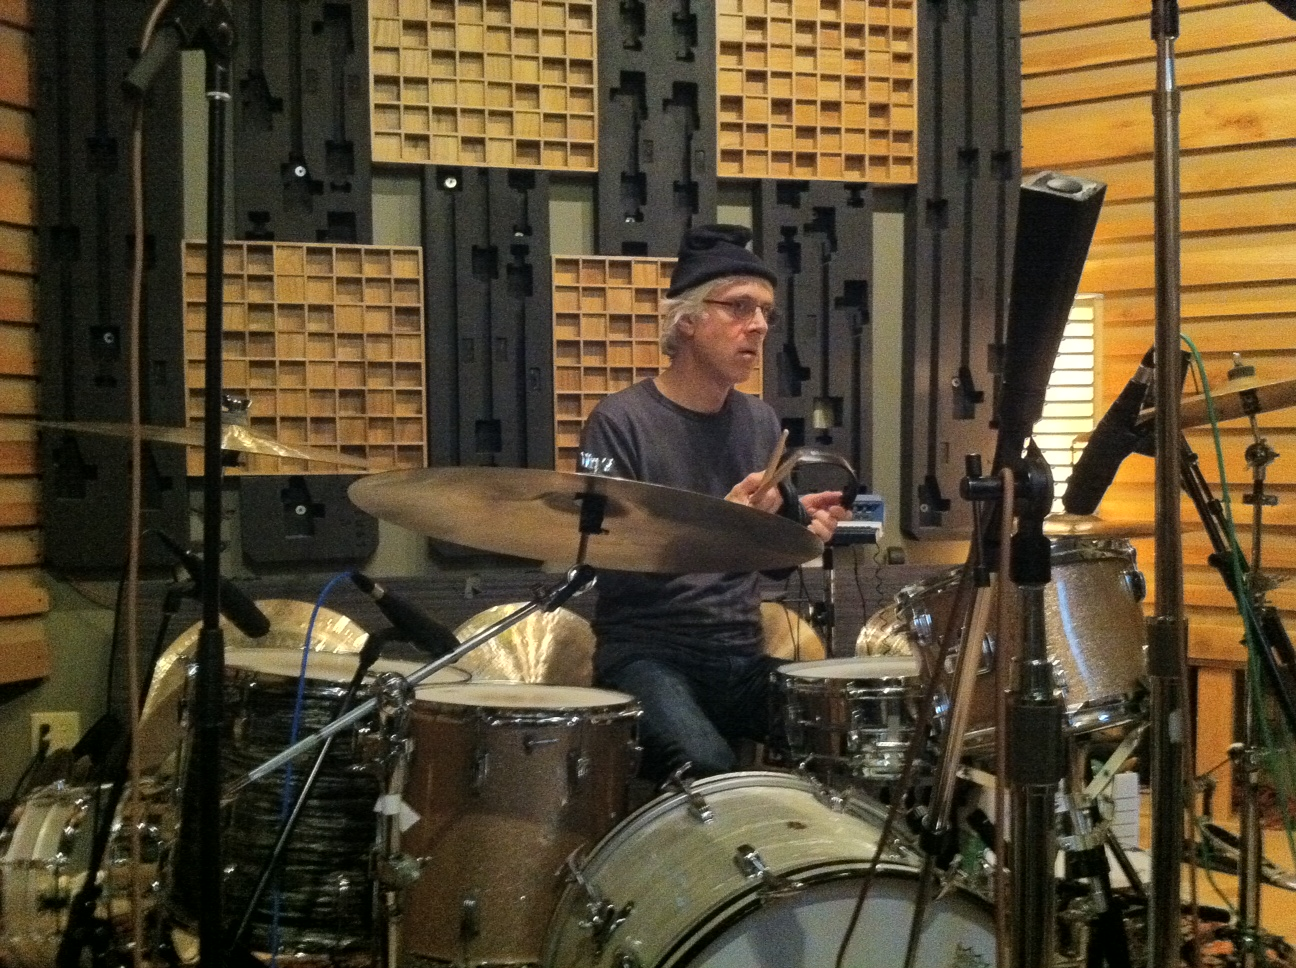 Bill Rieflin getting ready to record.